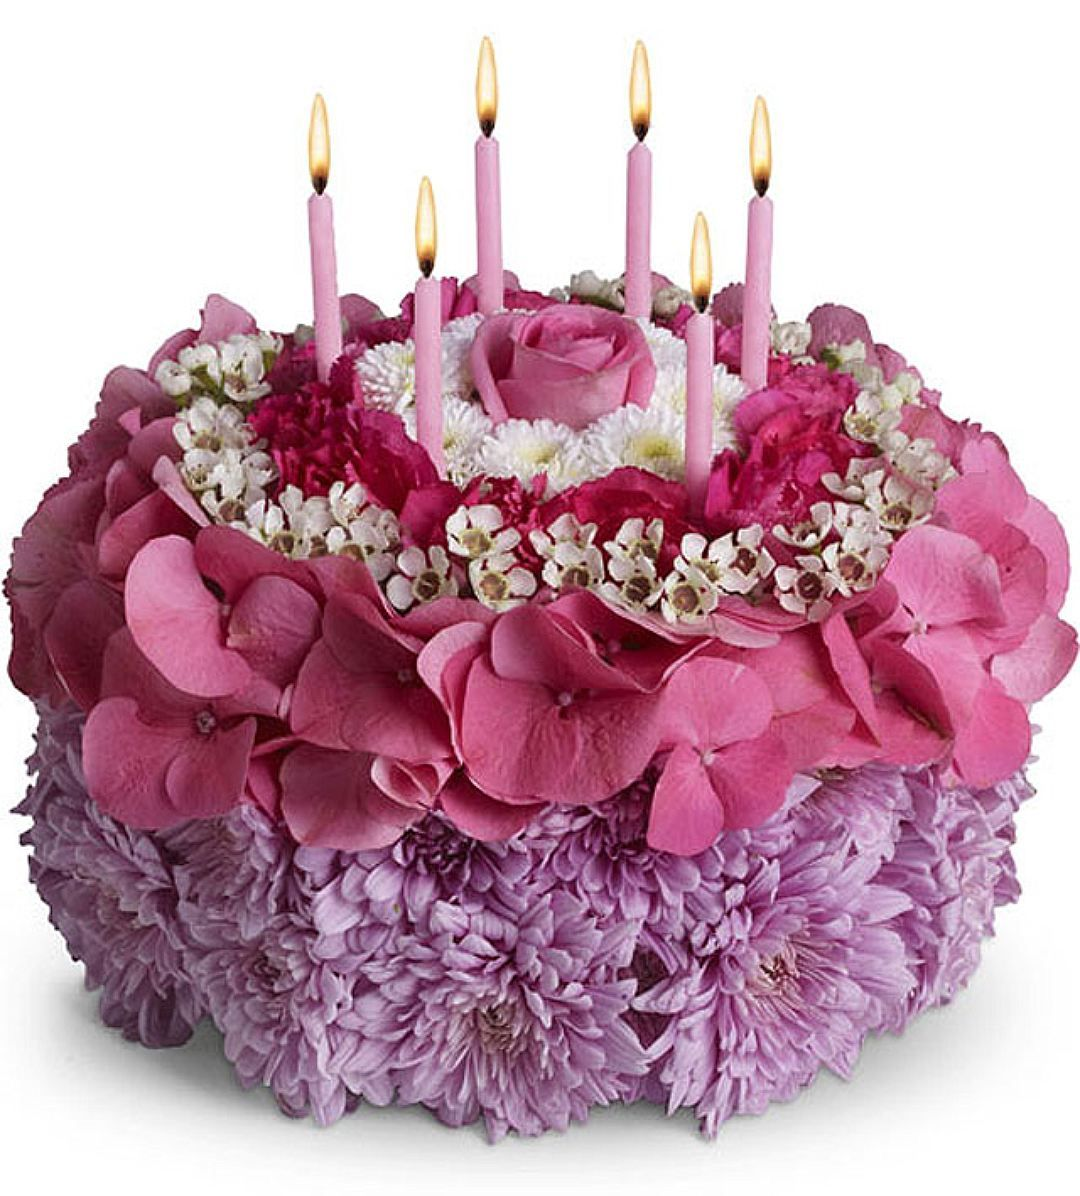 16 3 pinterest unique flower say happy birthday with the your special day birthday flower cake with candles from brant florist online worldwide florist same day delivery to usa and izmirmasajfo